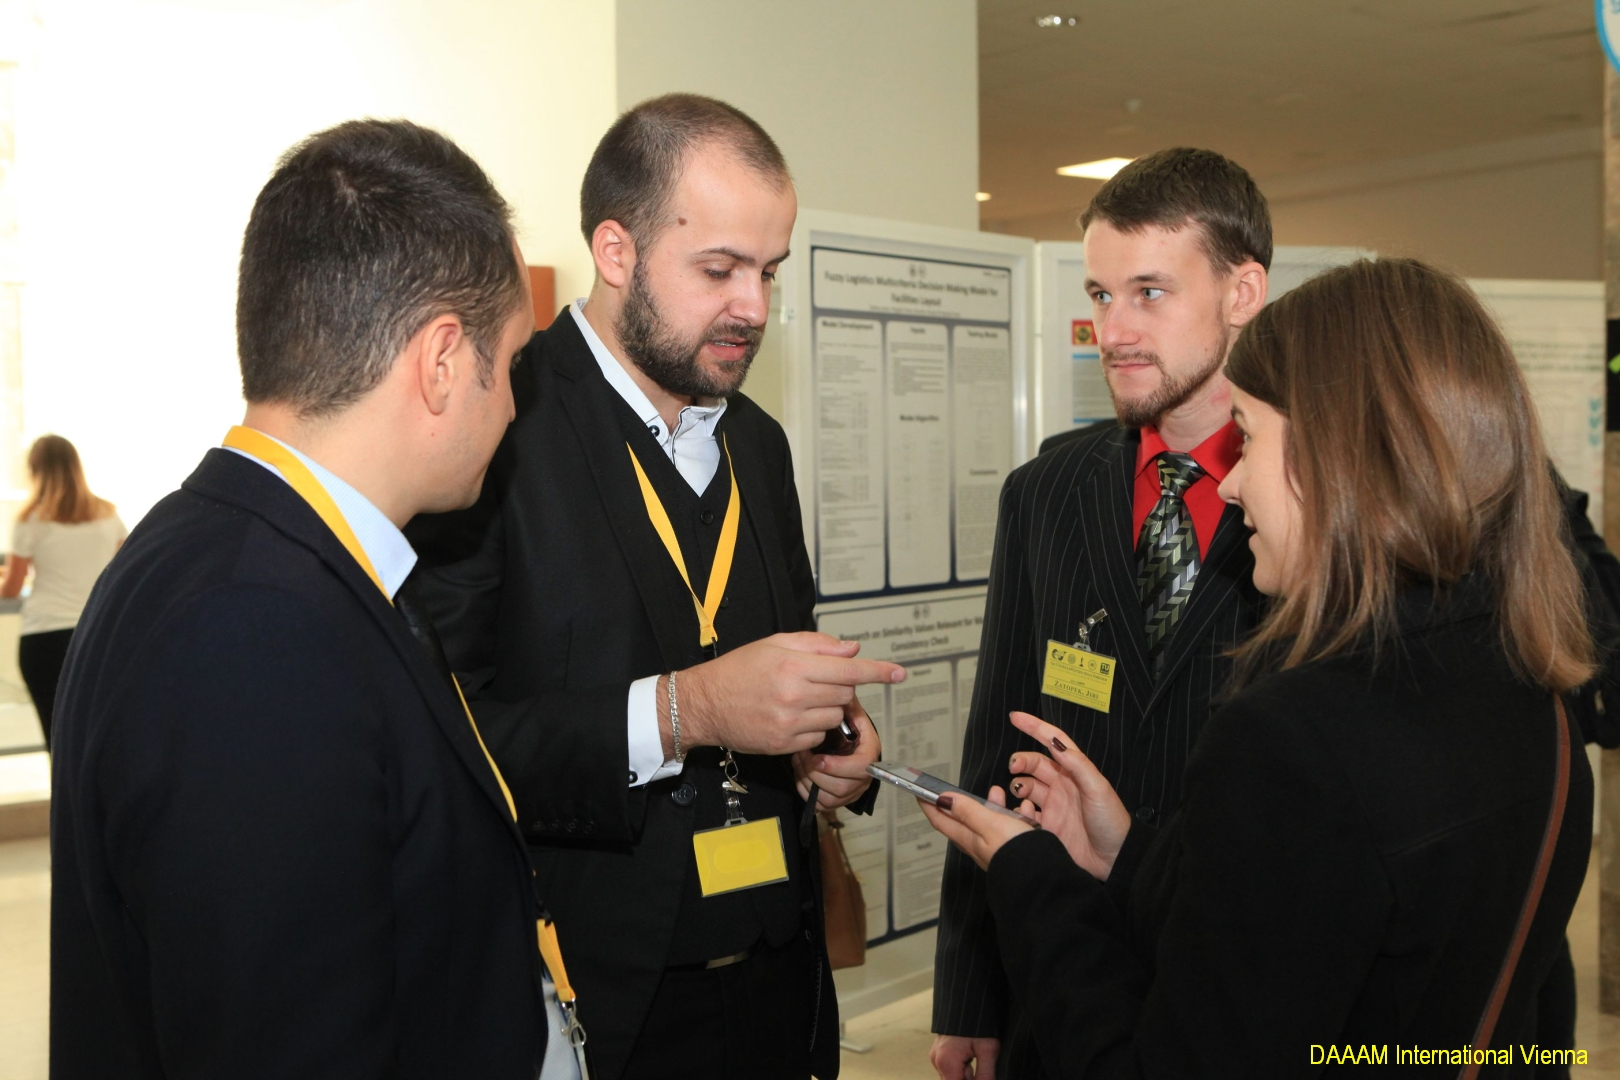 DAAAM_2016_Mostar_07_Posters_and_Presentations_Sessions_151